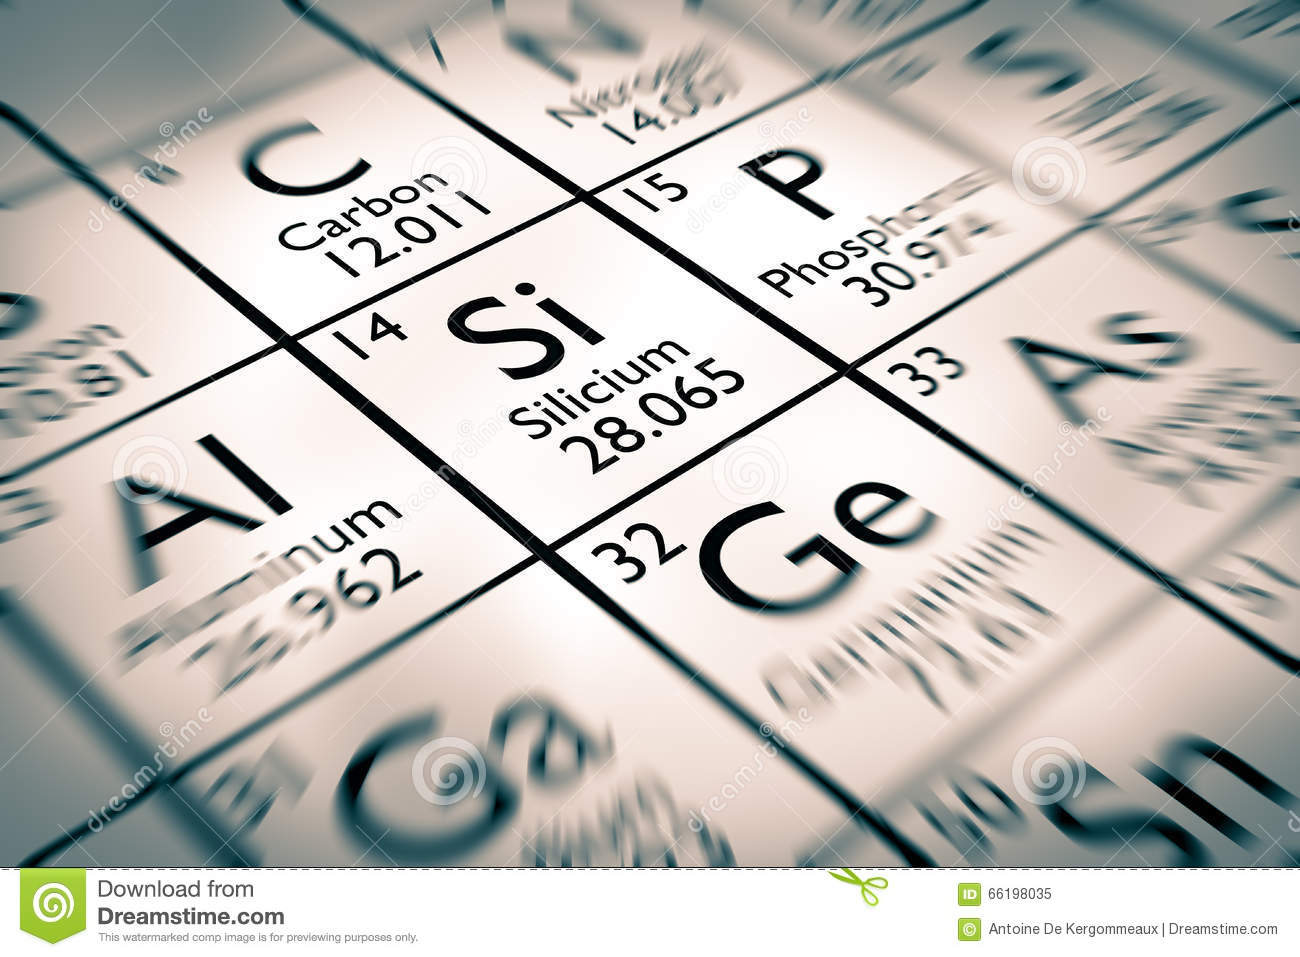 Focus on silicon chemical elements stock image image of mineral focus on silicon chemical elements biocorpaavc Gallery